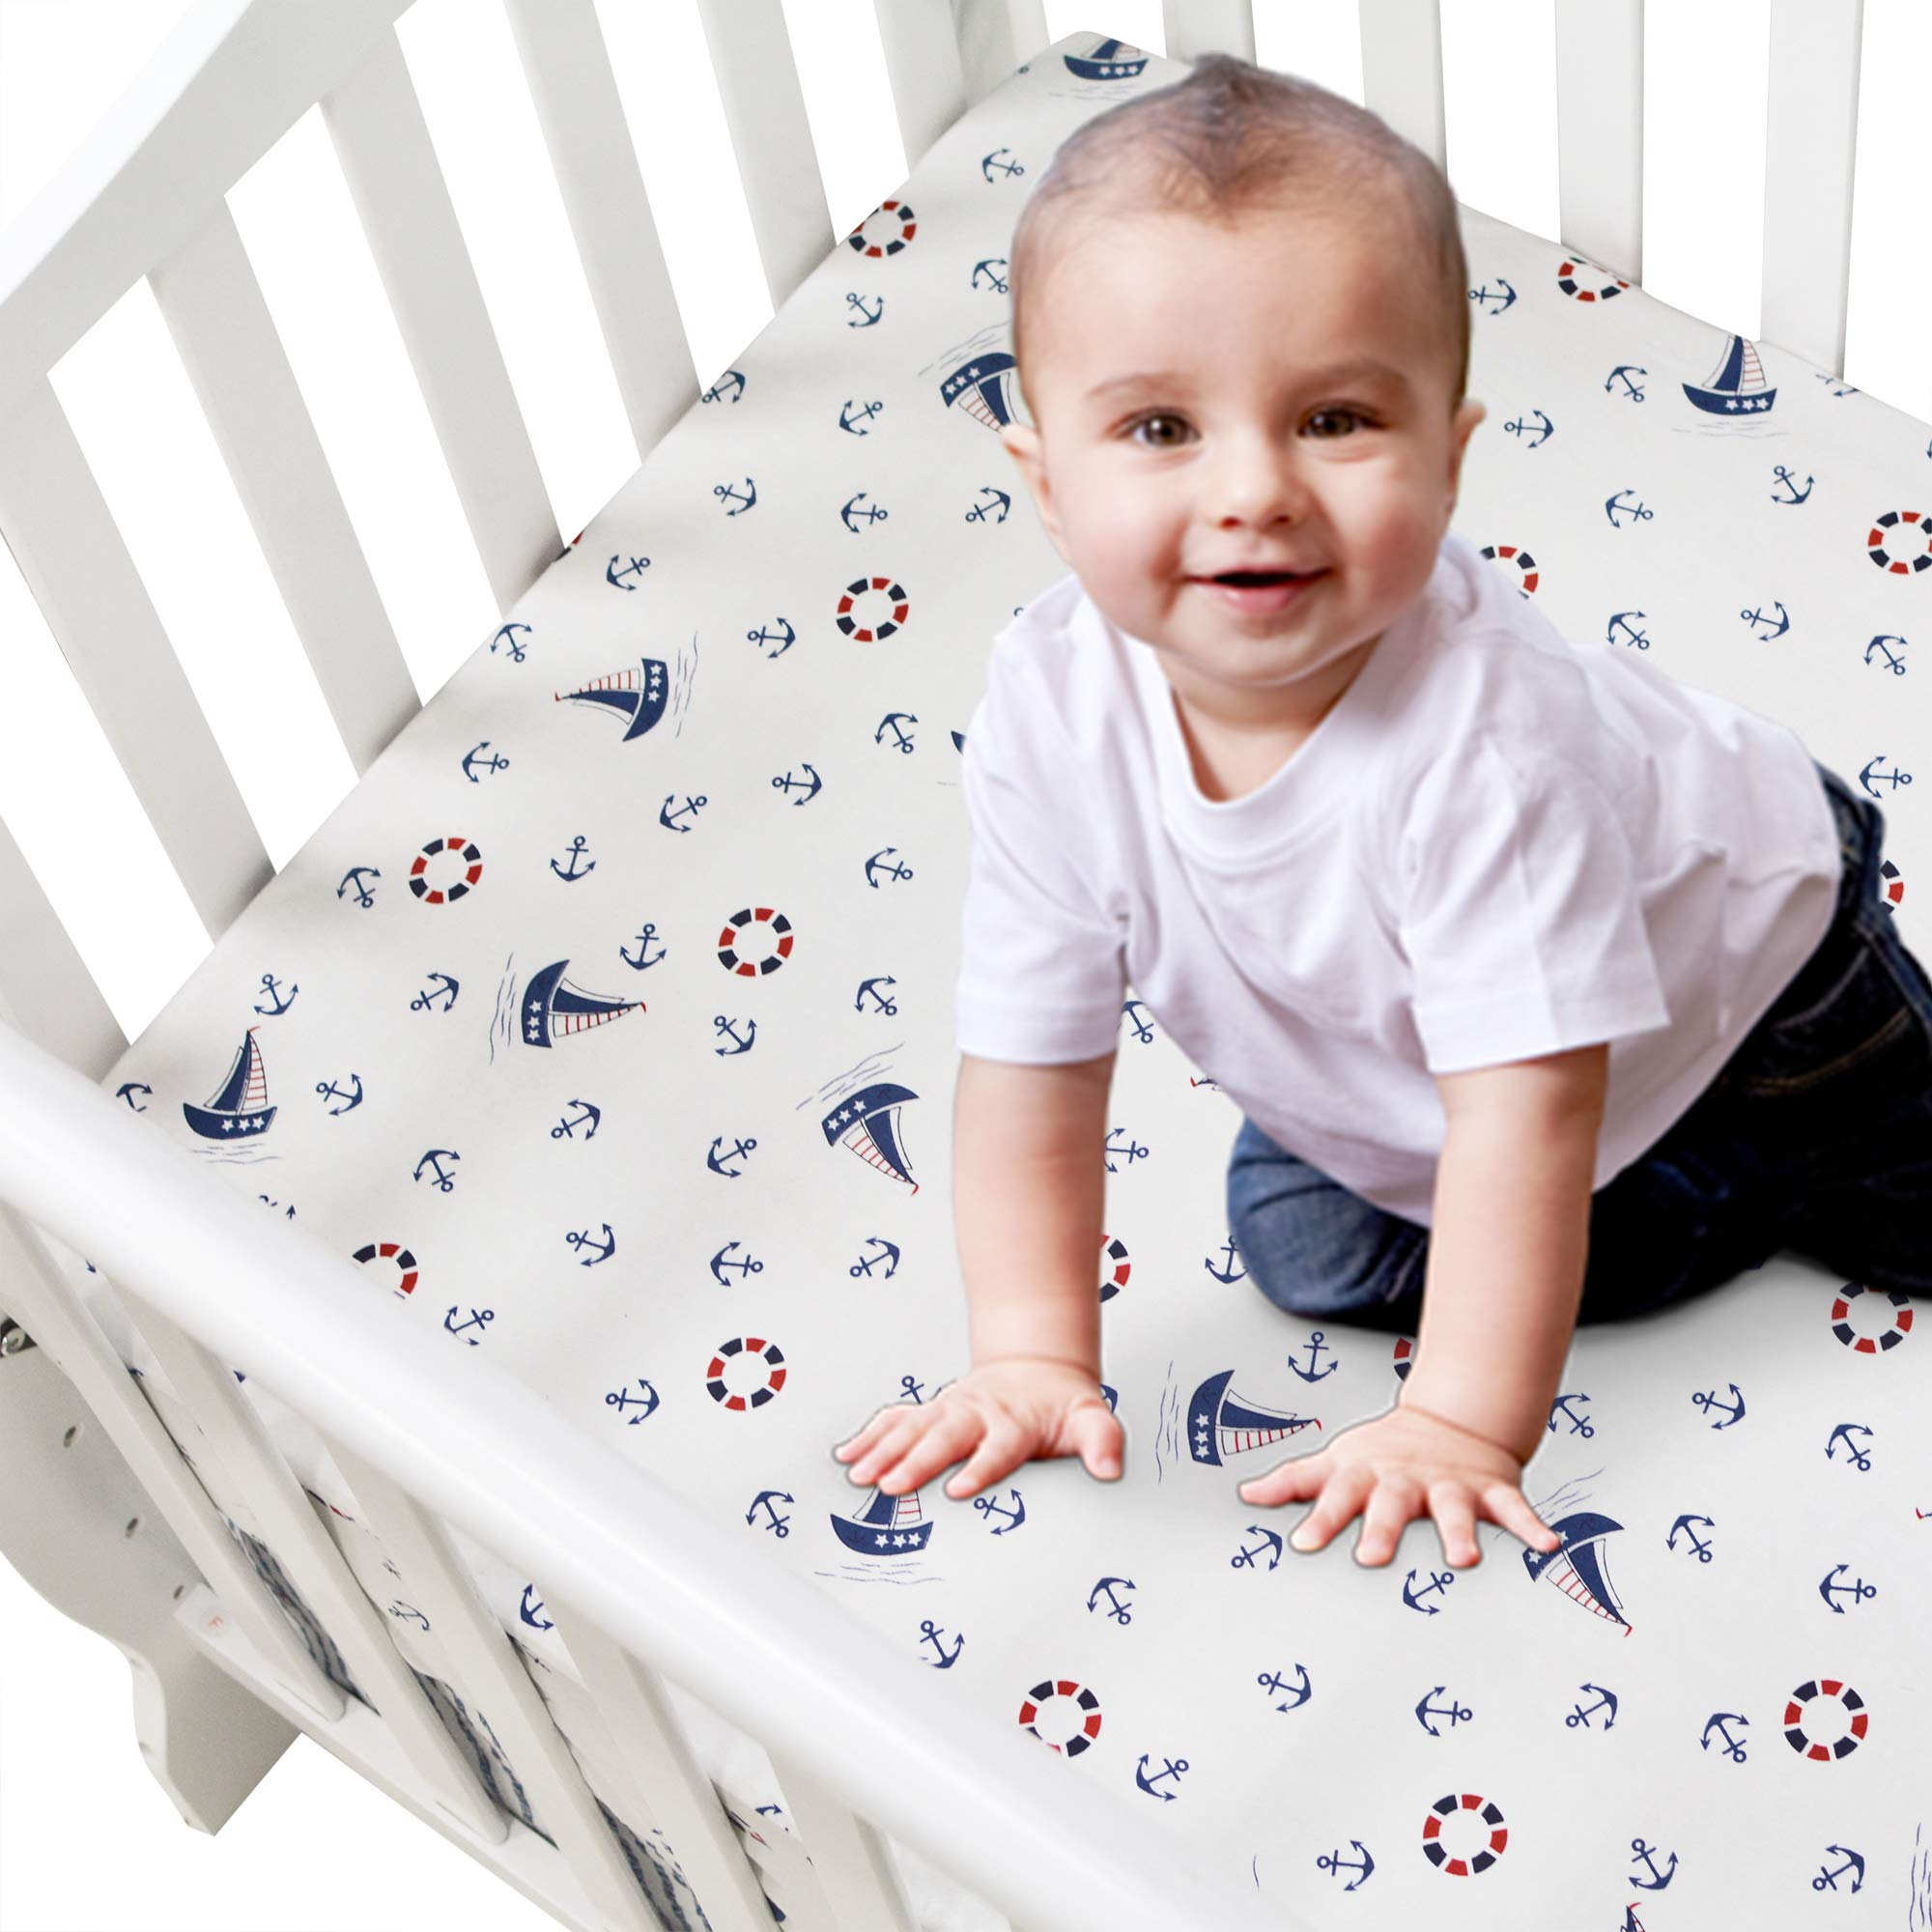 Brandream Nautical Crib Sheets Boy Navy Blue Fiited Crib Sheet Baby Toddler Sheets Cotton 100% Hypoallergenic Cotton Anchor Printed